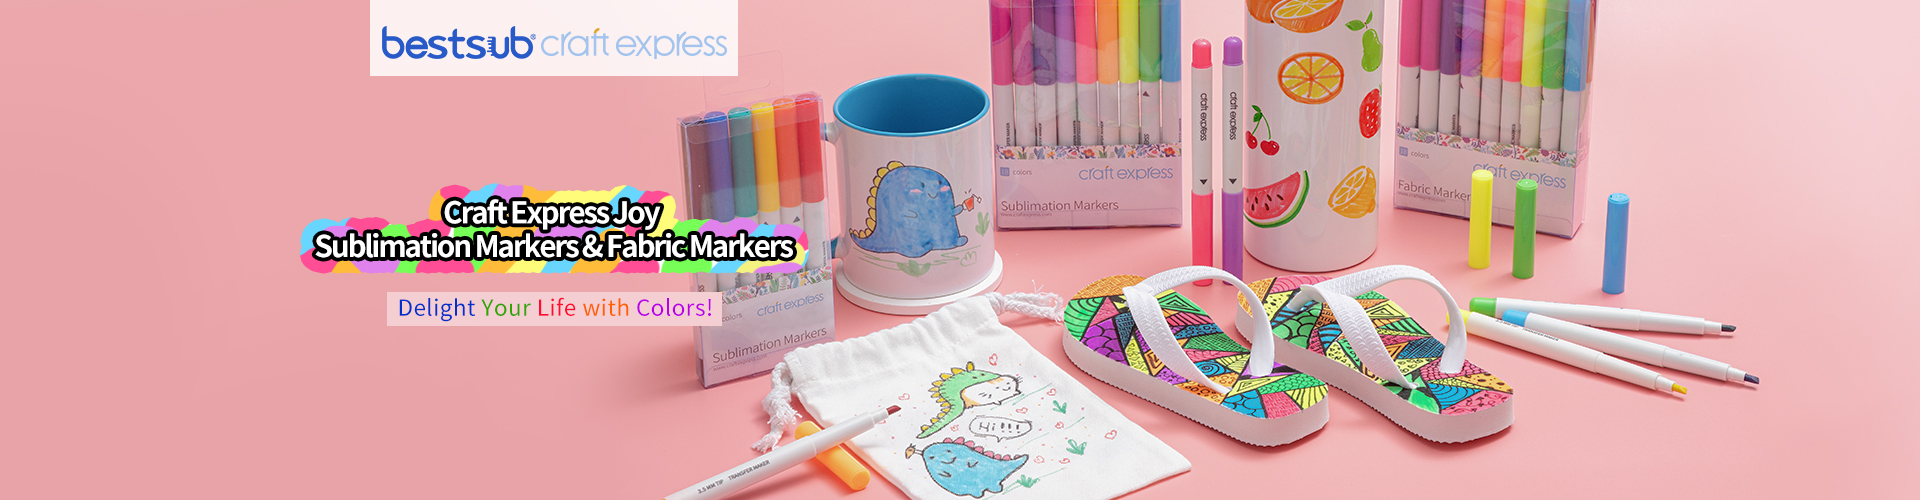 2021-03-10_Craft_Express_Joy_Sublimation_Markers_Fabric_Markers_new_web